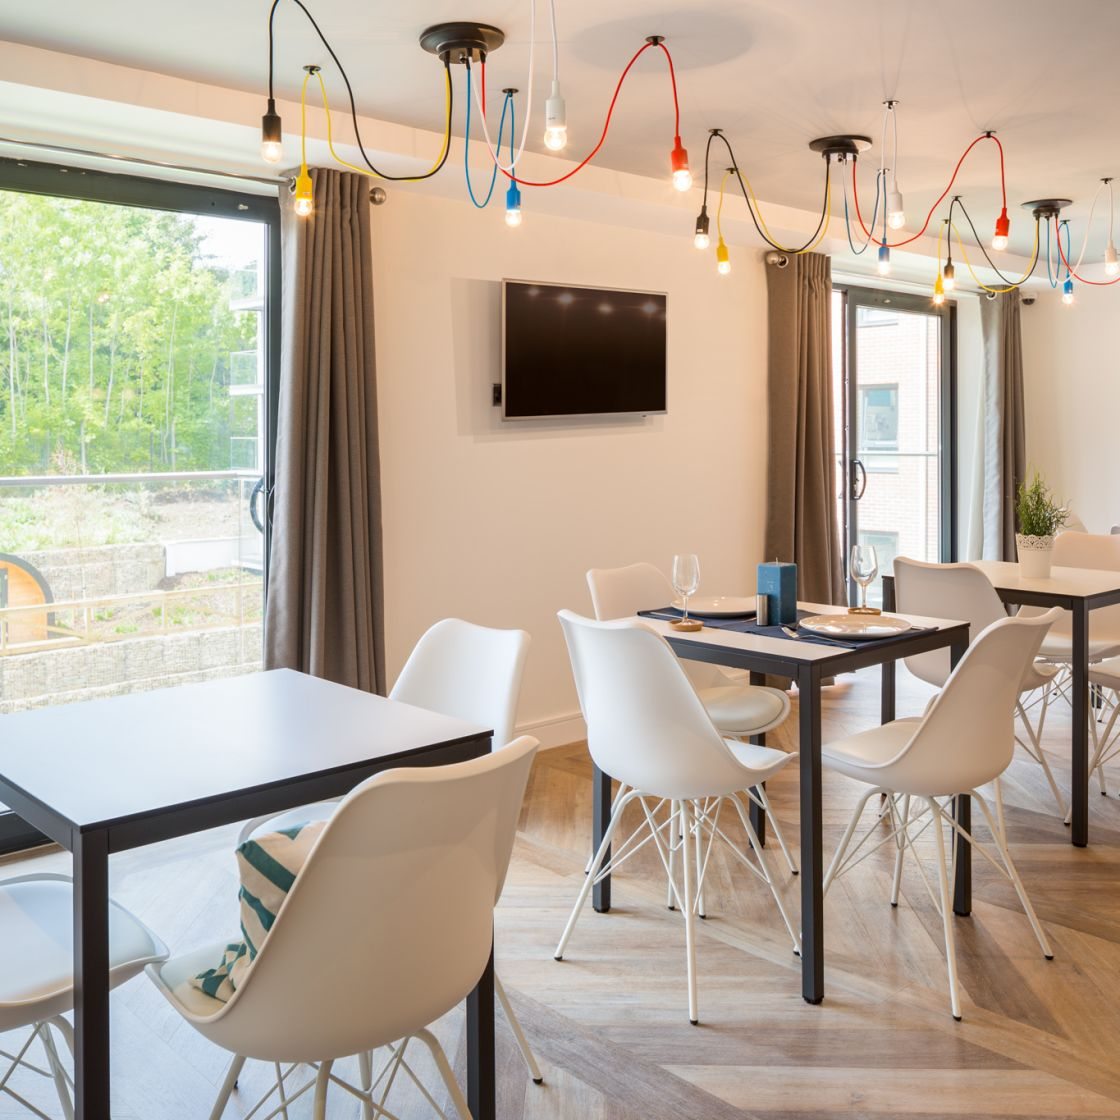 Mega Kitchen Dining Tables at IconInc, The Glassworks. Student Accommodation in Leeds